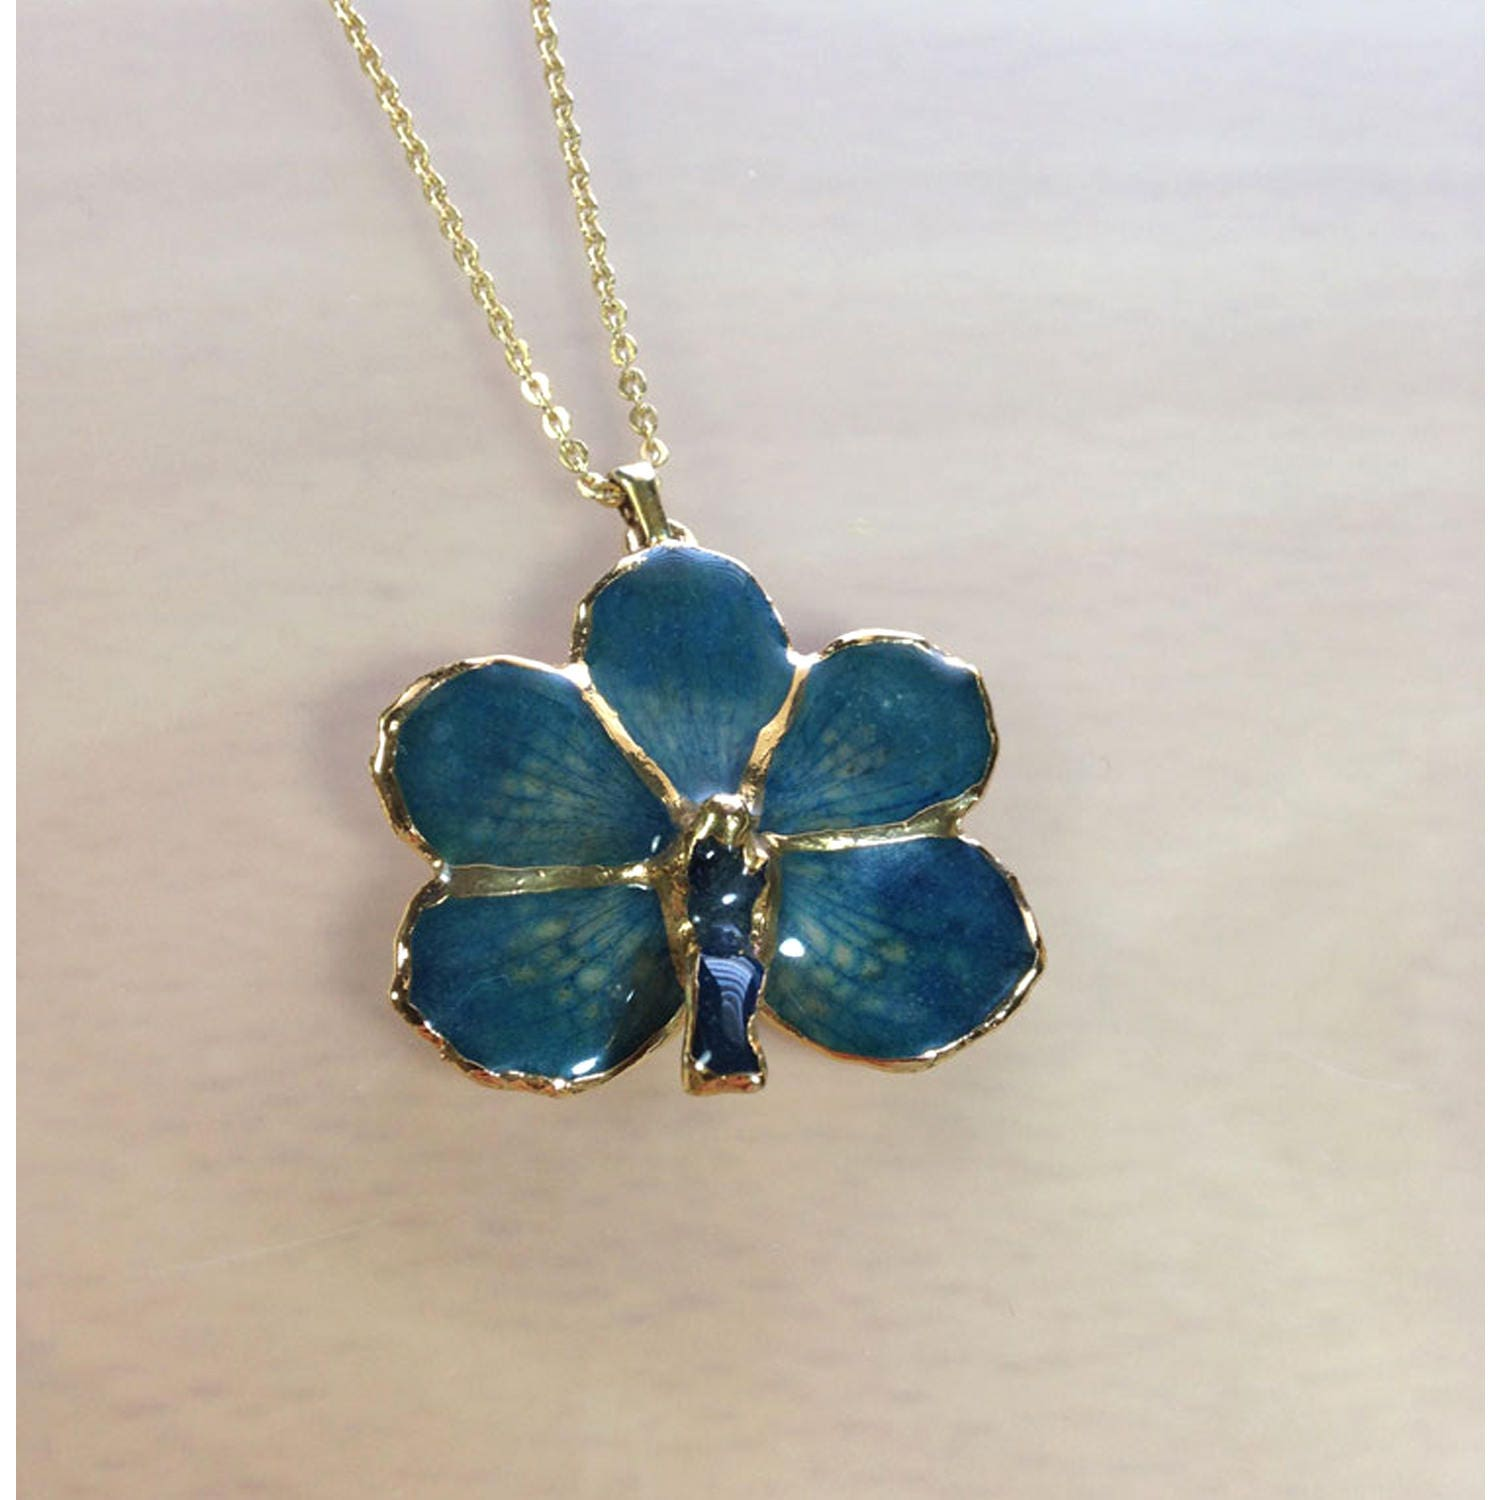 Orchid Trellis New Diamontrigue Jewelry: Orchid Jewelry Orchid Necklace For Women Blue Flower